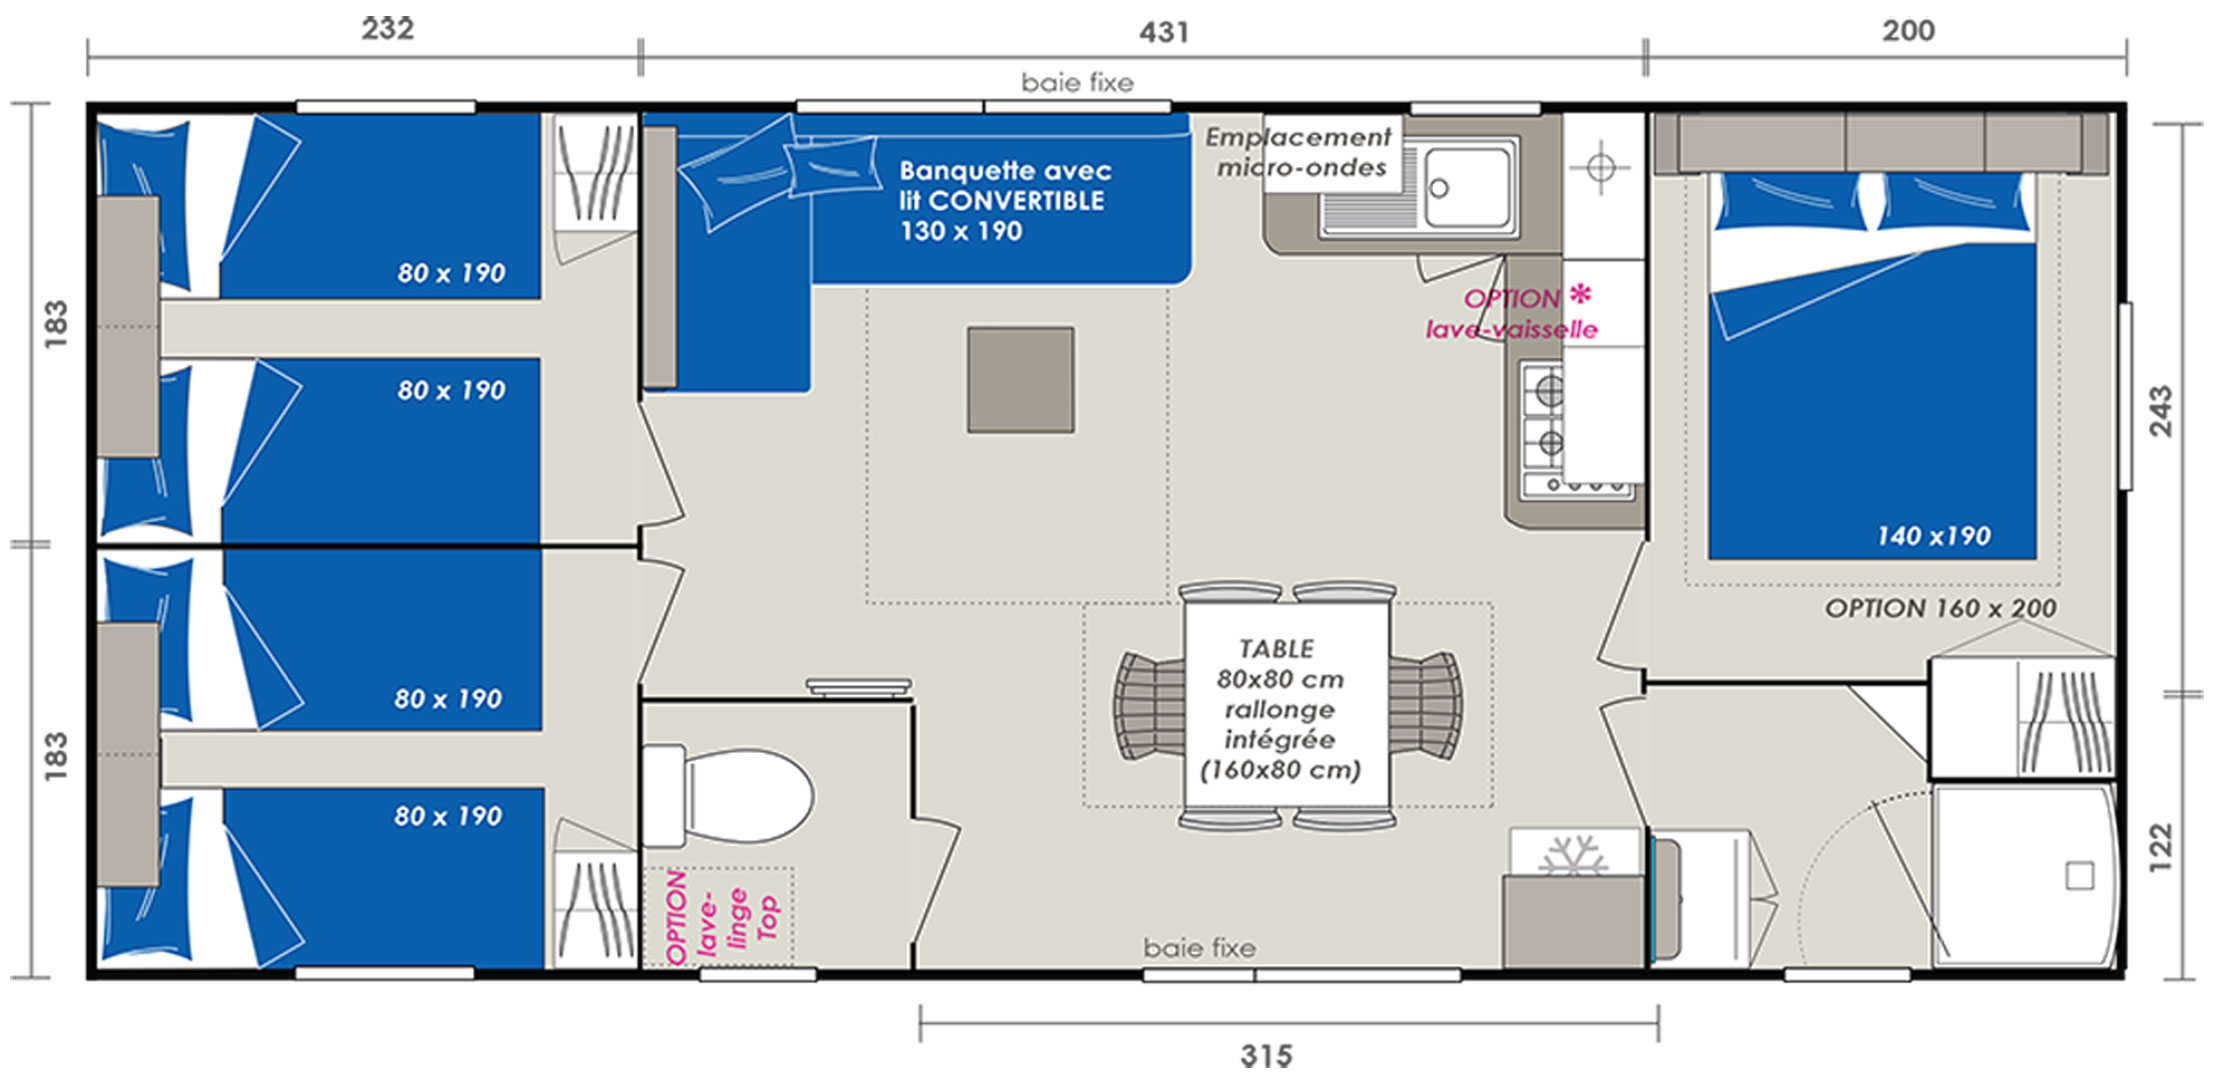 Location Mobilhome 3ch 6/8 personnes : Plan du mobilhome